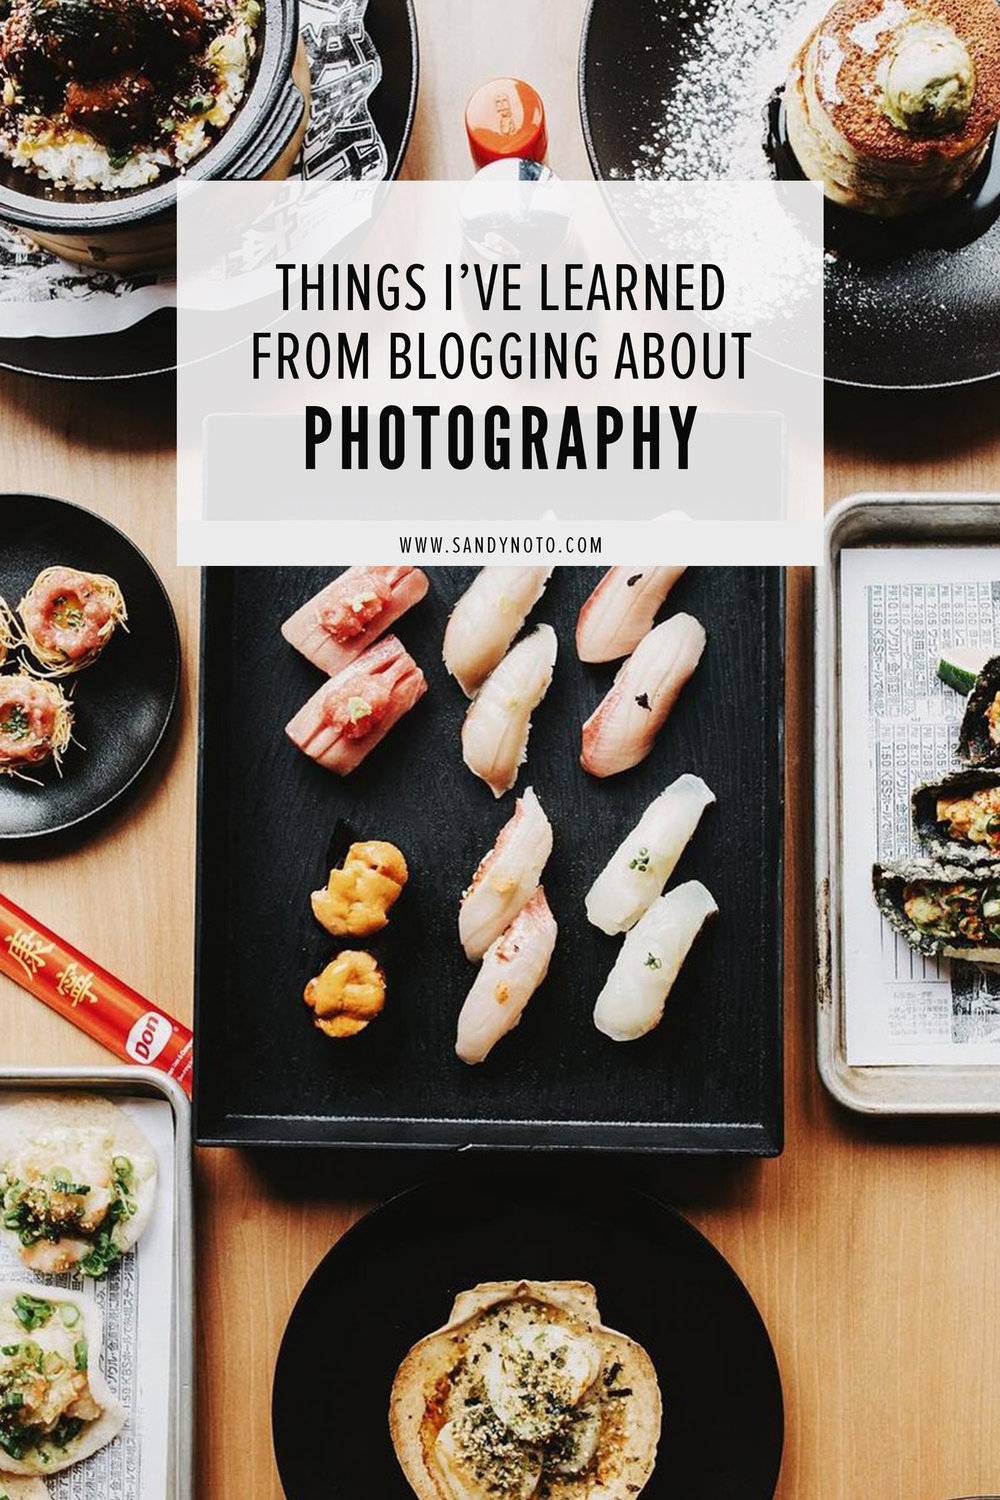 Things I've Learned from Blogging About Photography